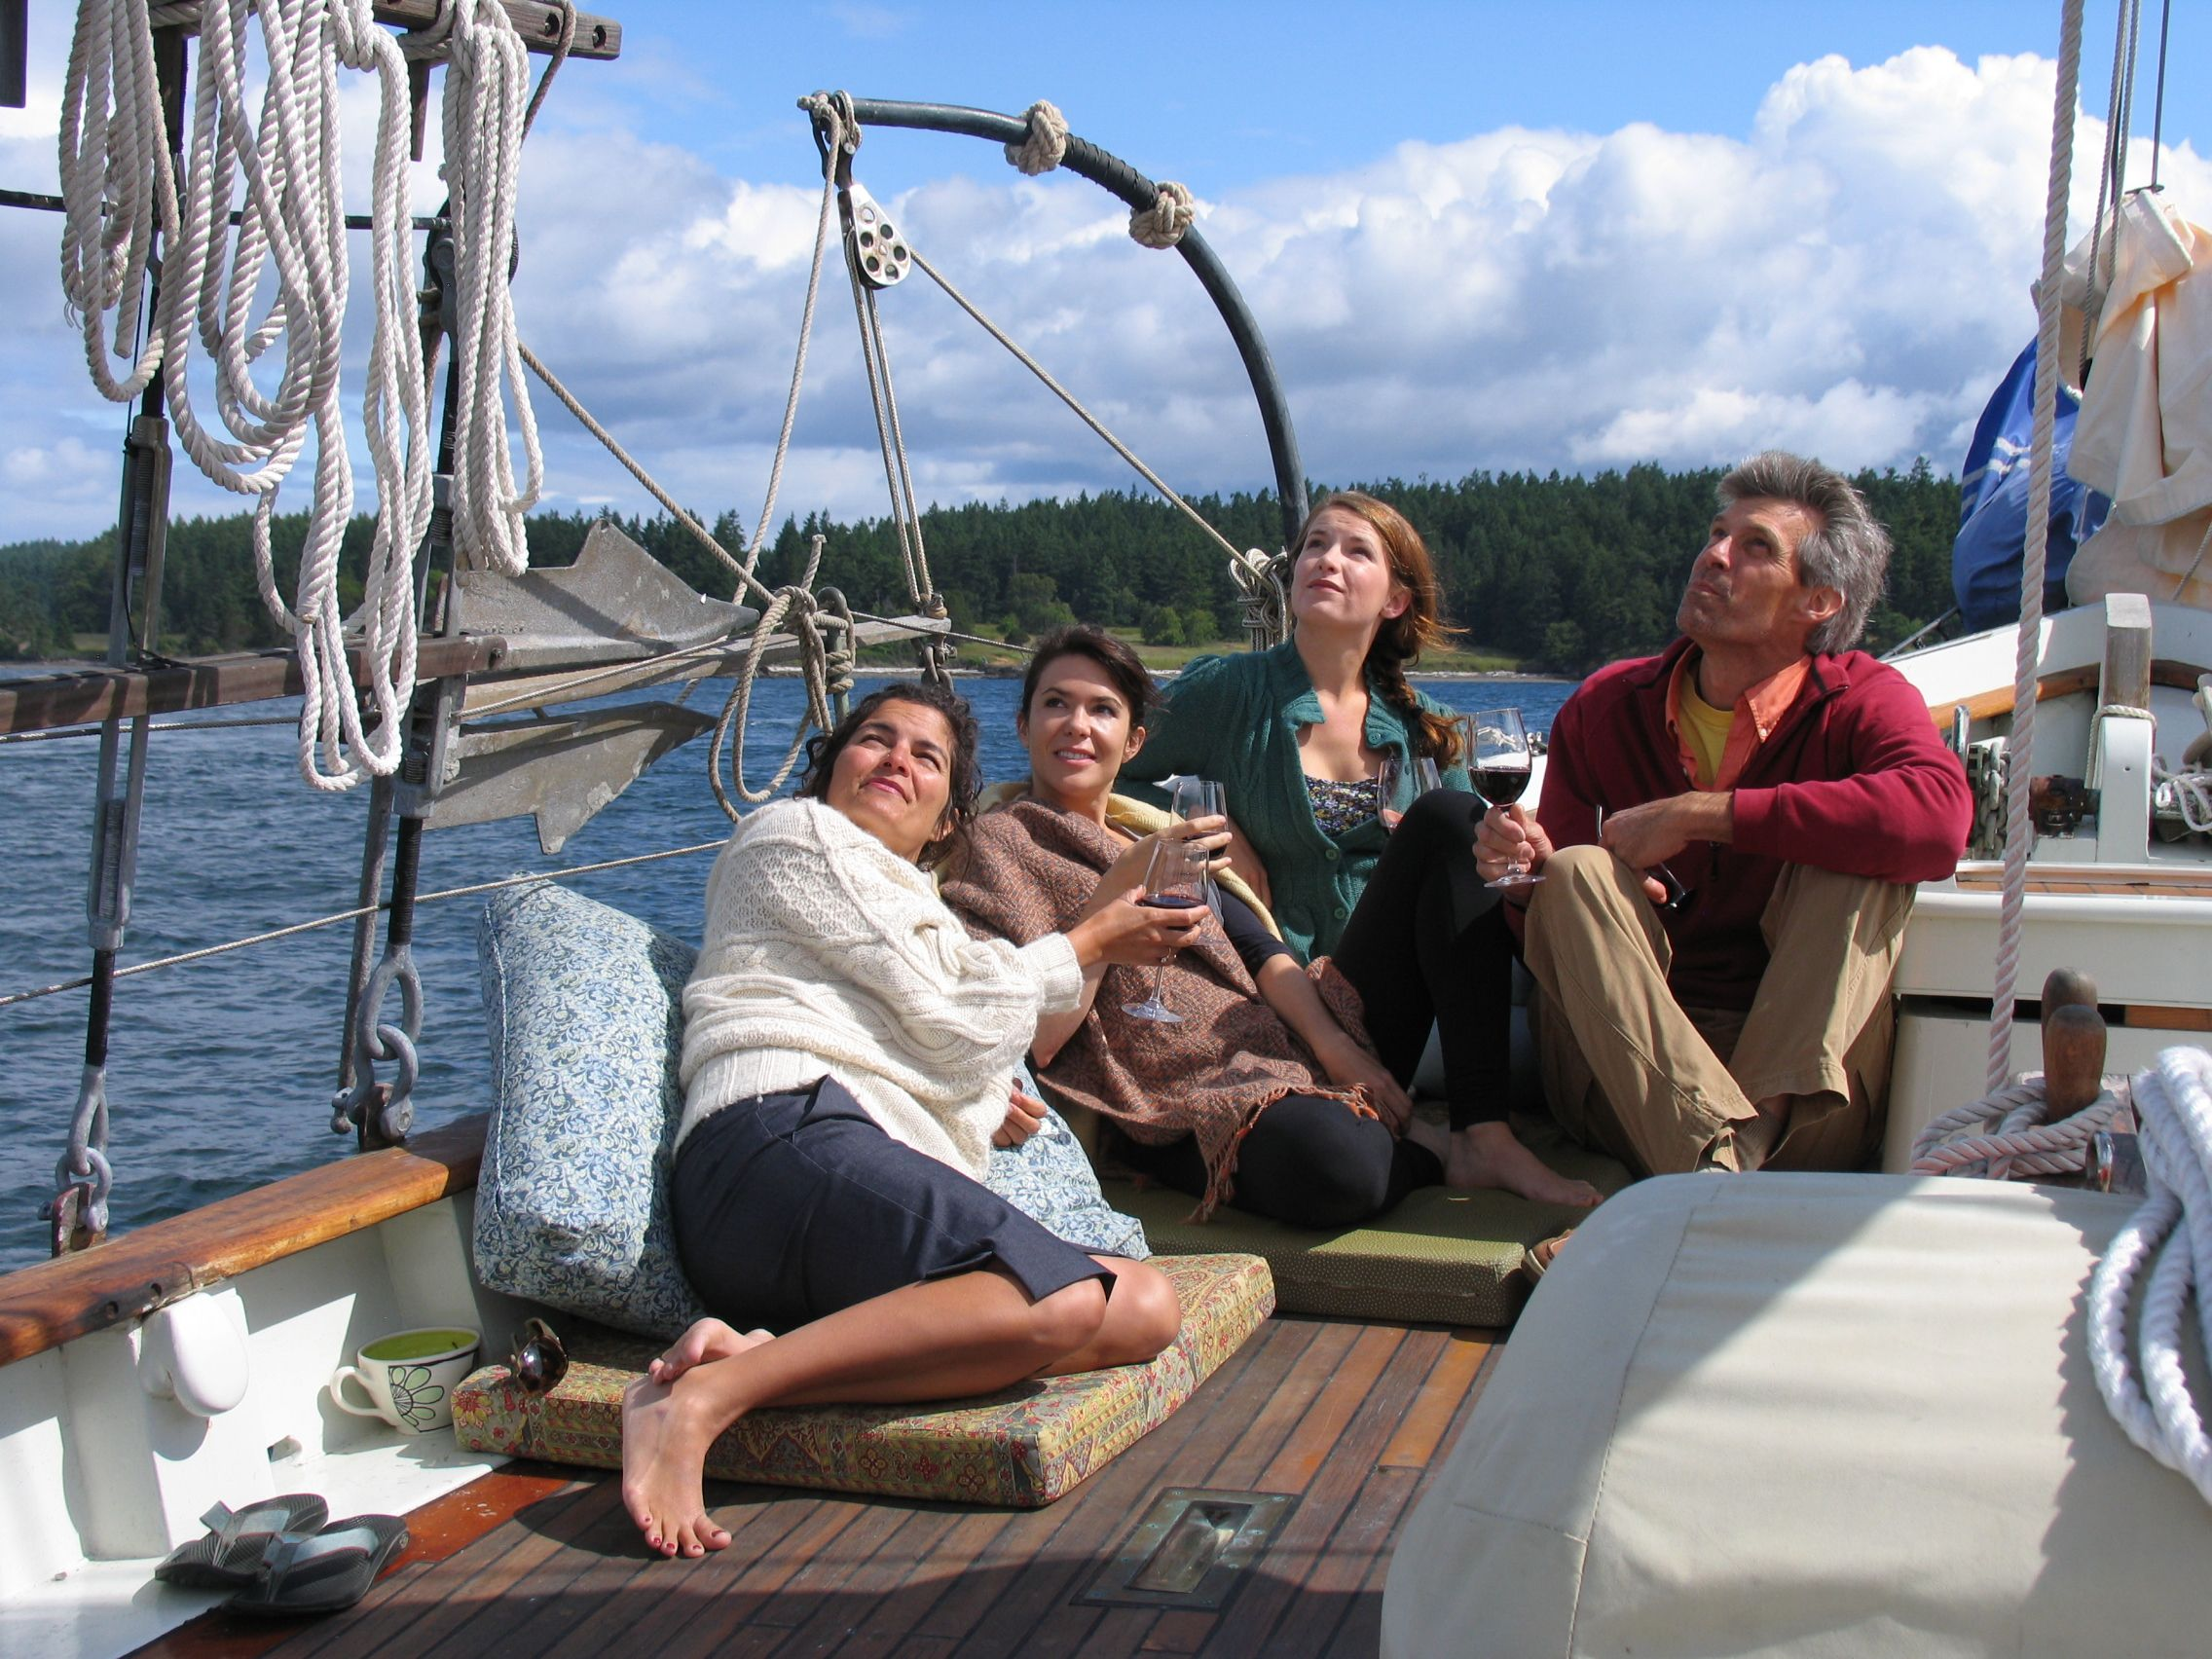 A San Juan Islands Cruise Provides Vacation Goers an Enjoyable Ride